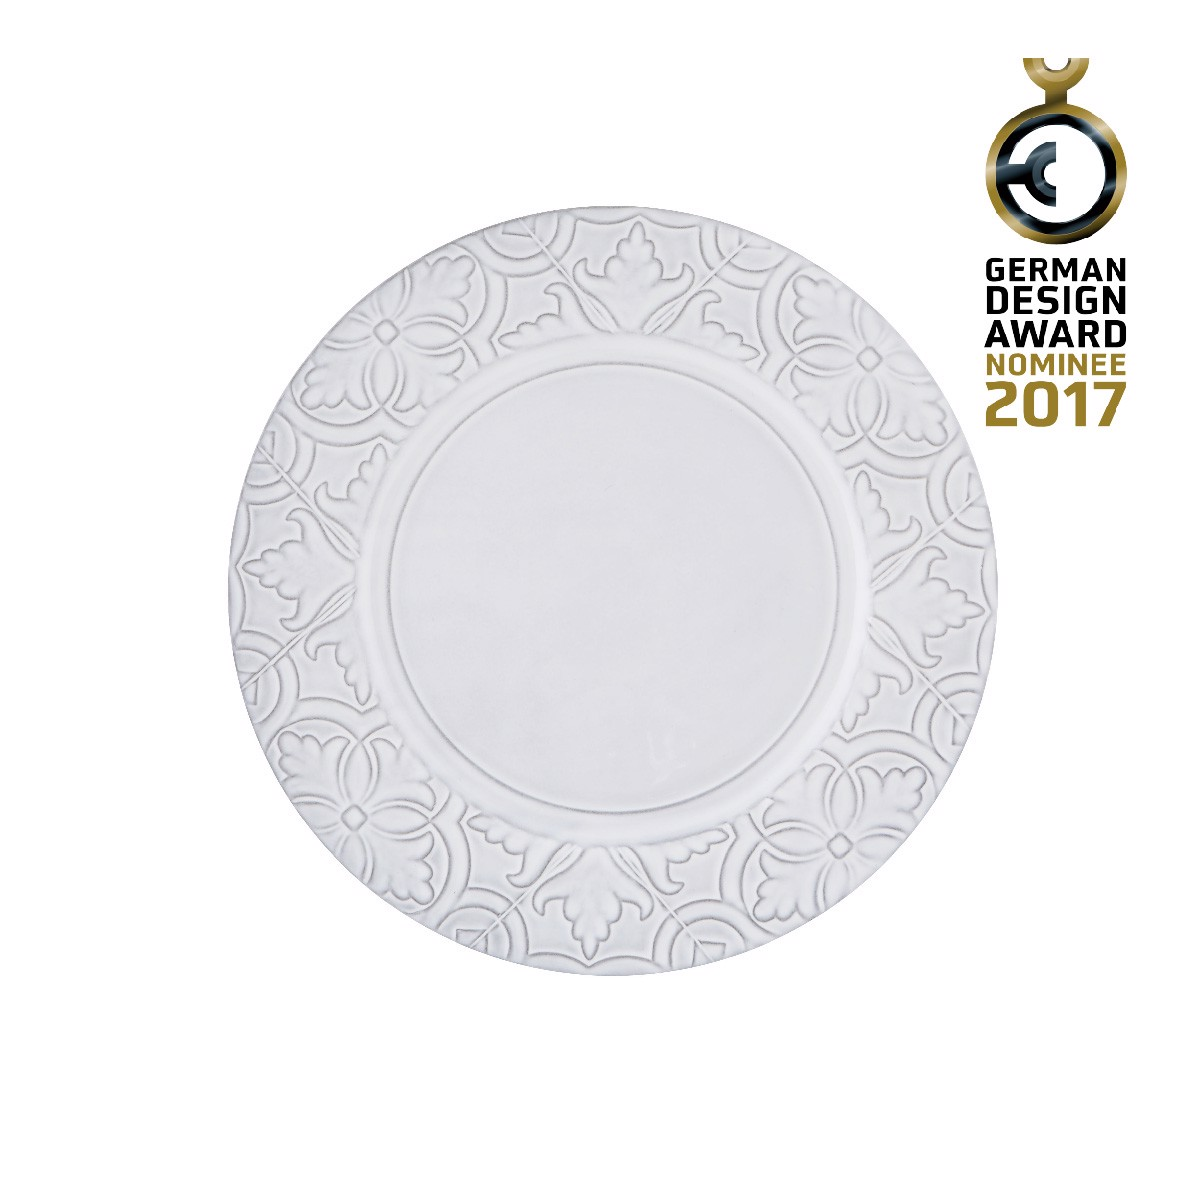 Bordallo - Rua Nova - Dinner plate